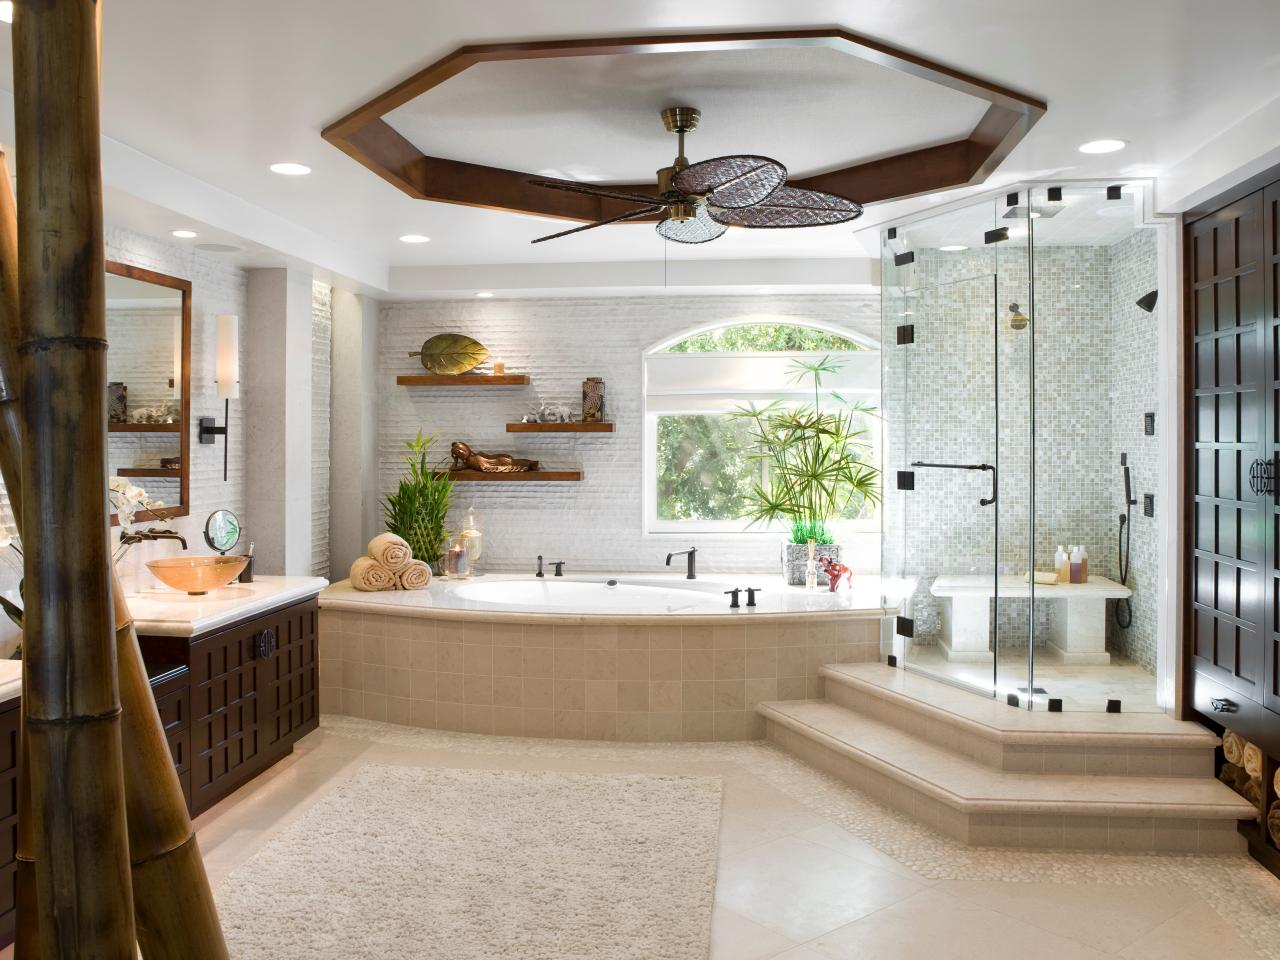 Luxury bathrooms hgtv for Bathroom ideas luxury